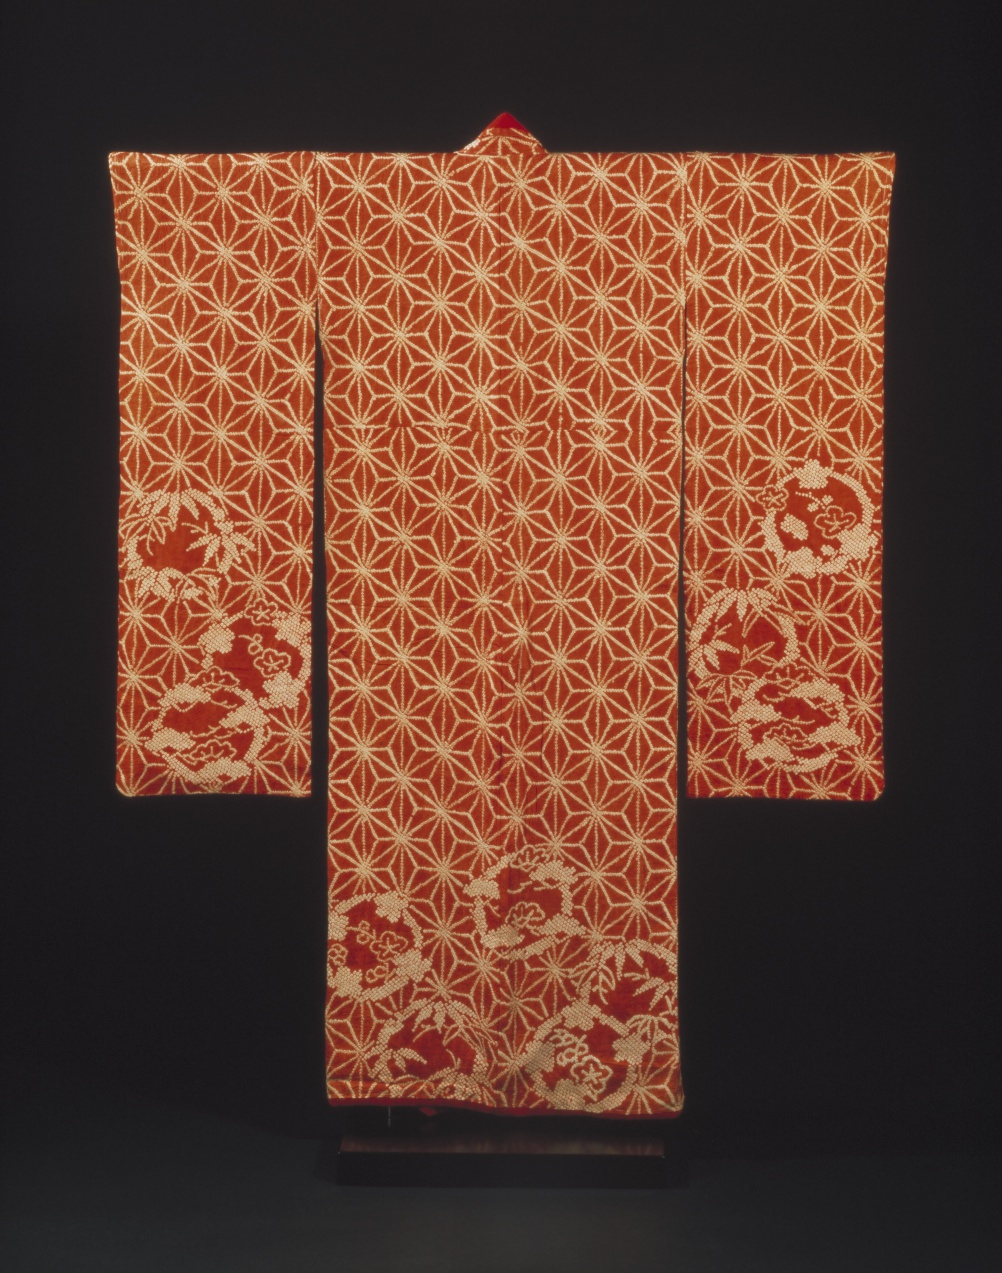 Kimono, 1790-1830 (c) Victoria and Albert Museum, London